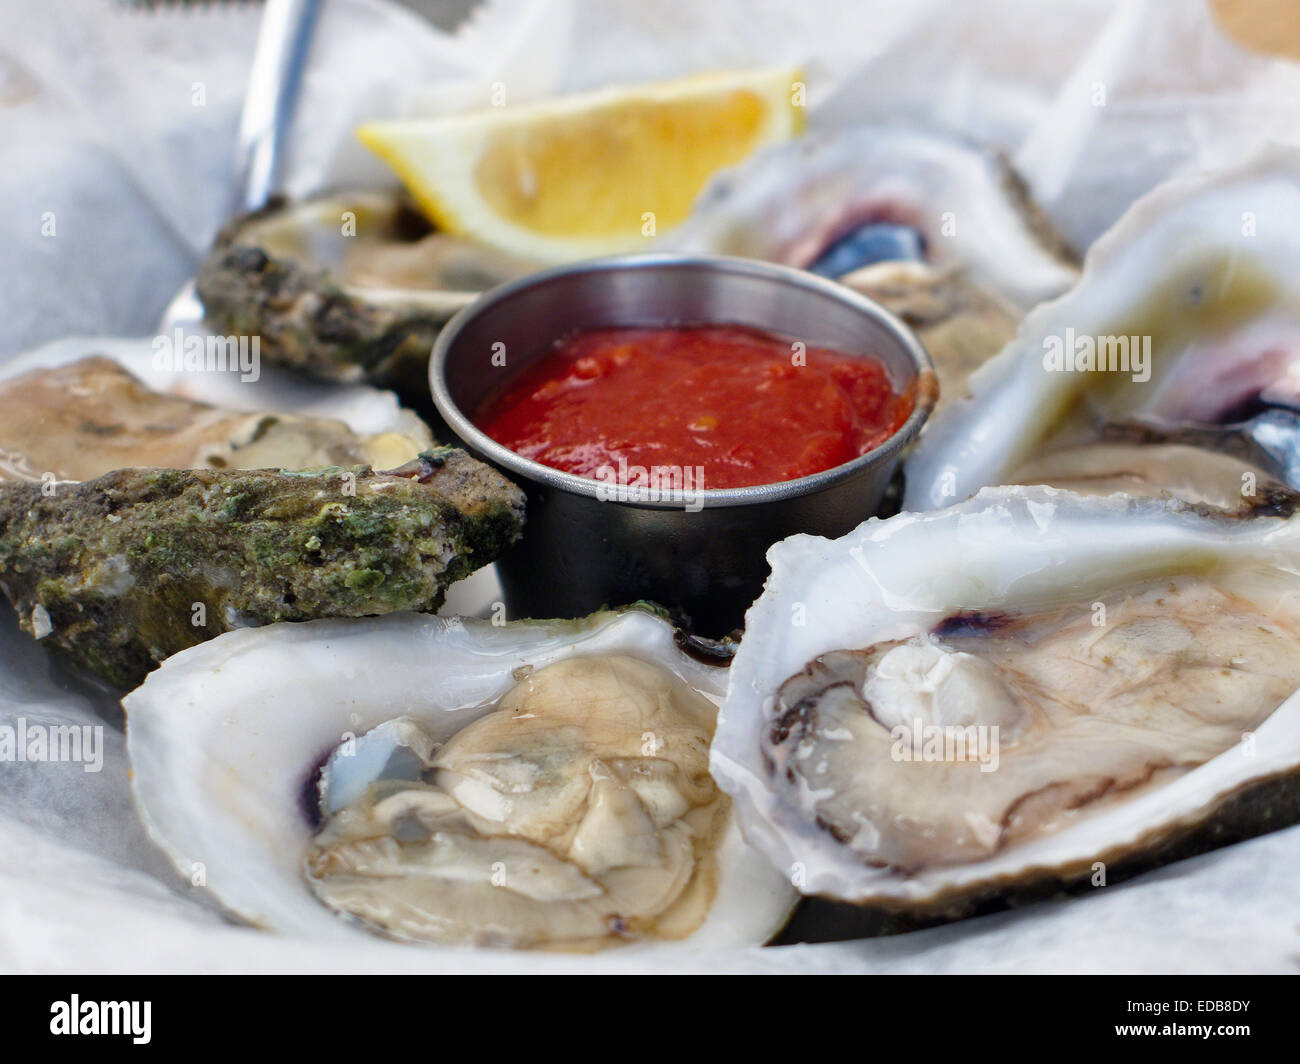 Close Up View of Oysters on a Half Shell, Baltimore, Maryland - Stock Image